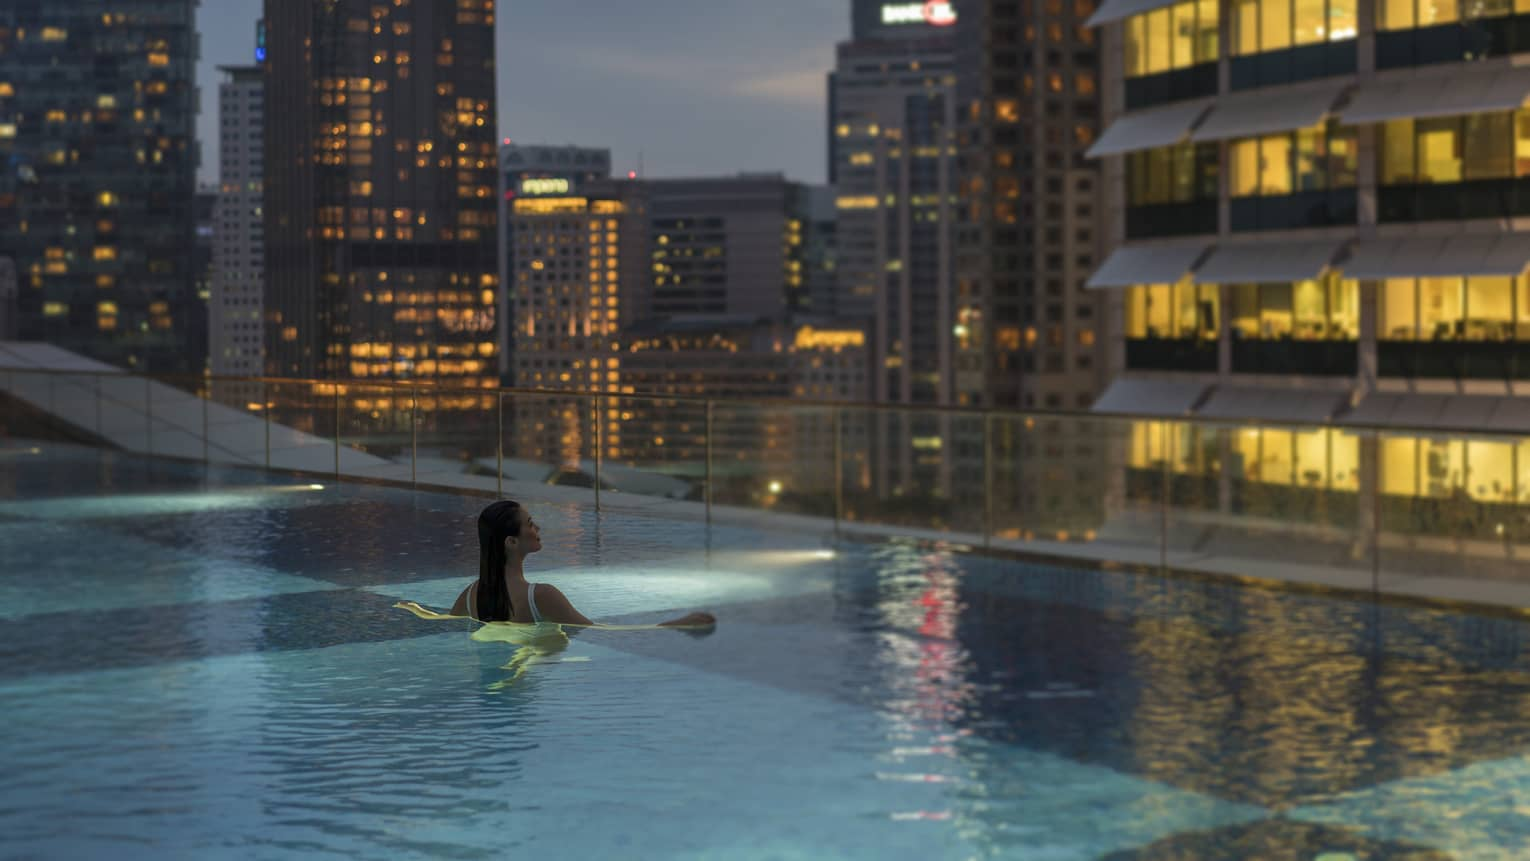 A woman swims in an infinity pool with a view of the city skyline